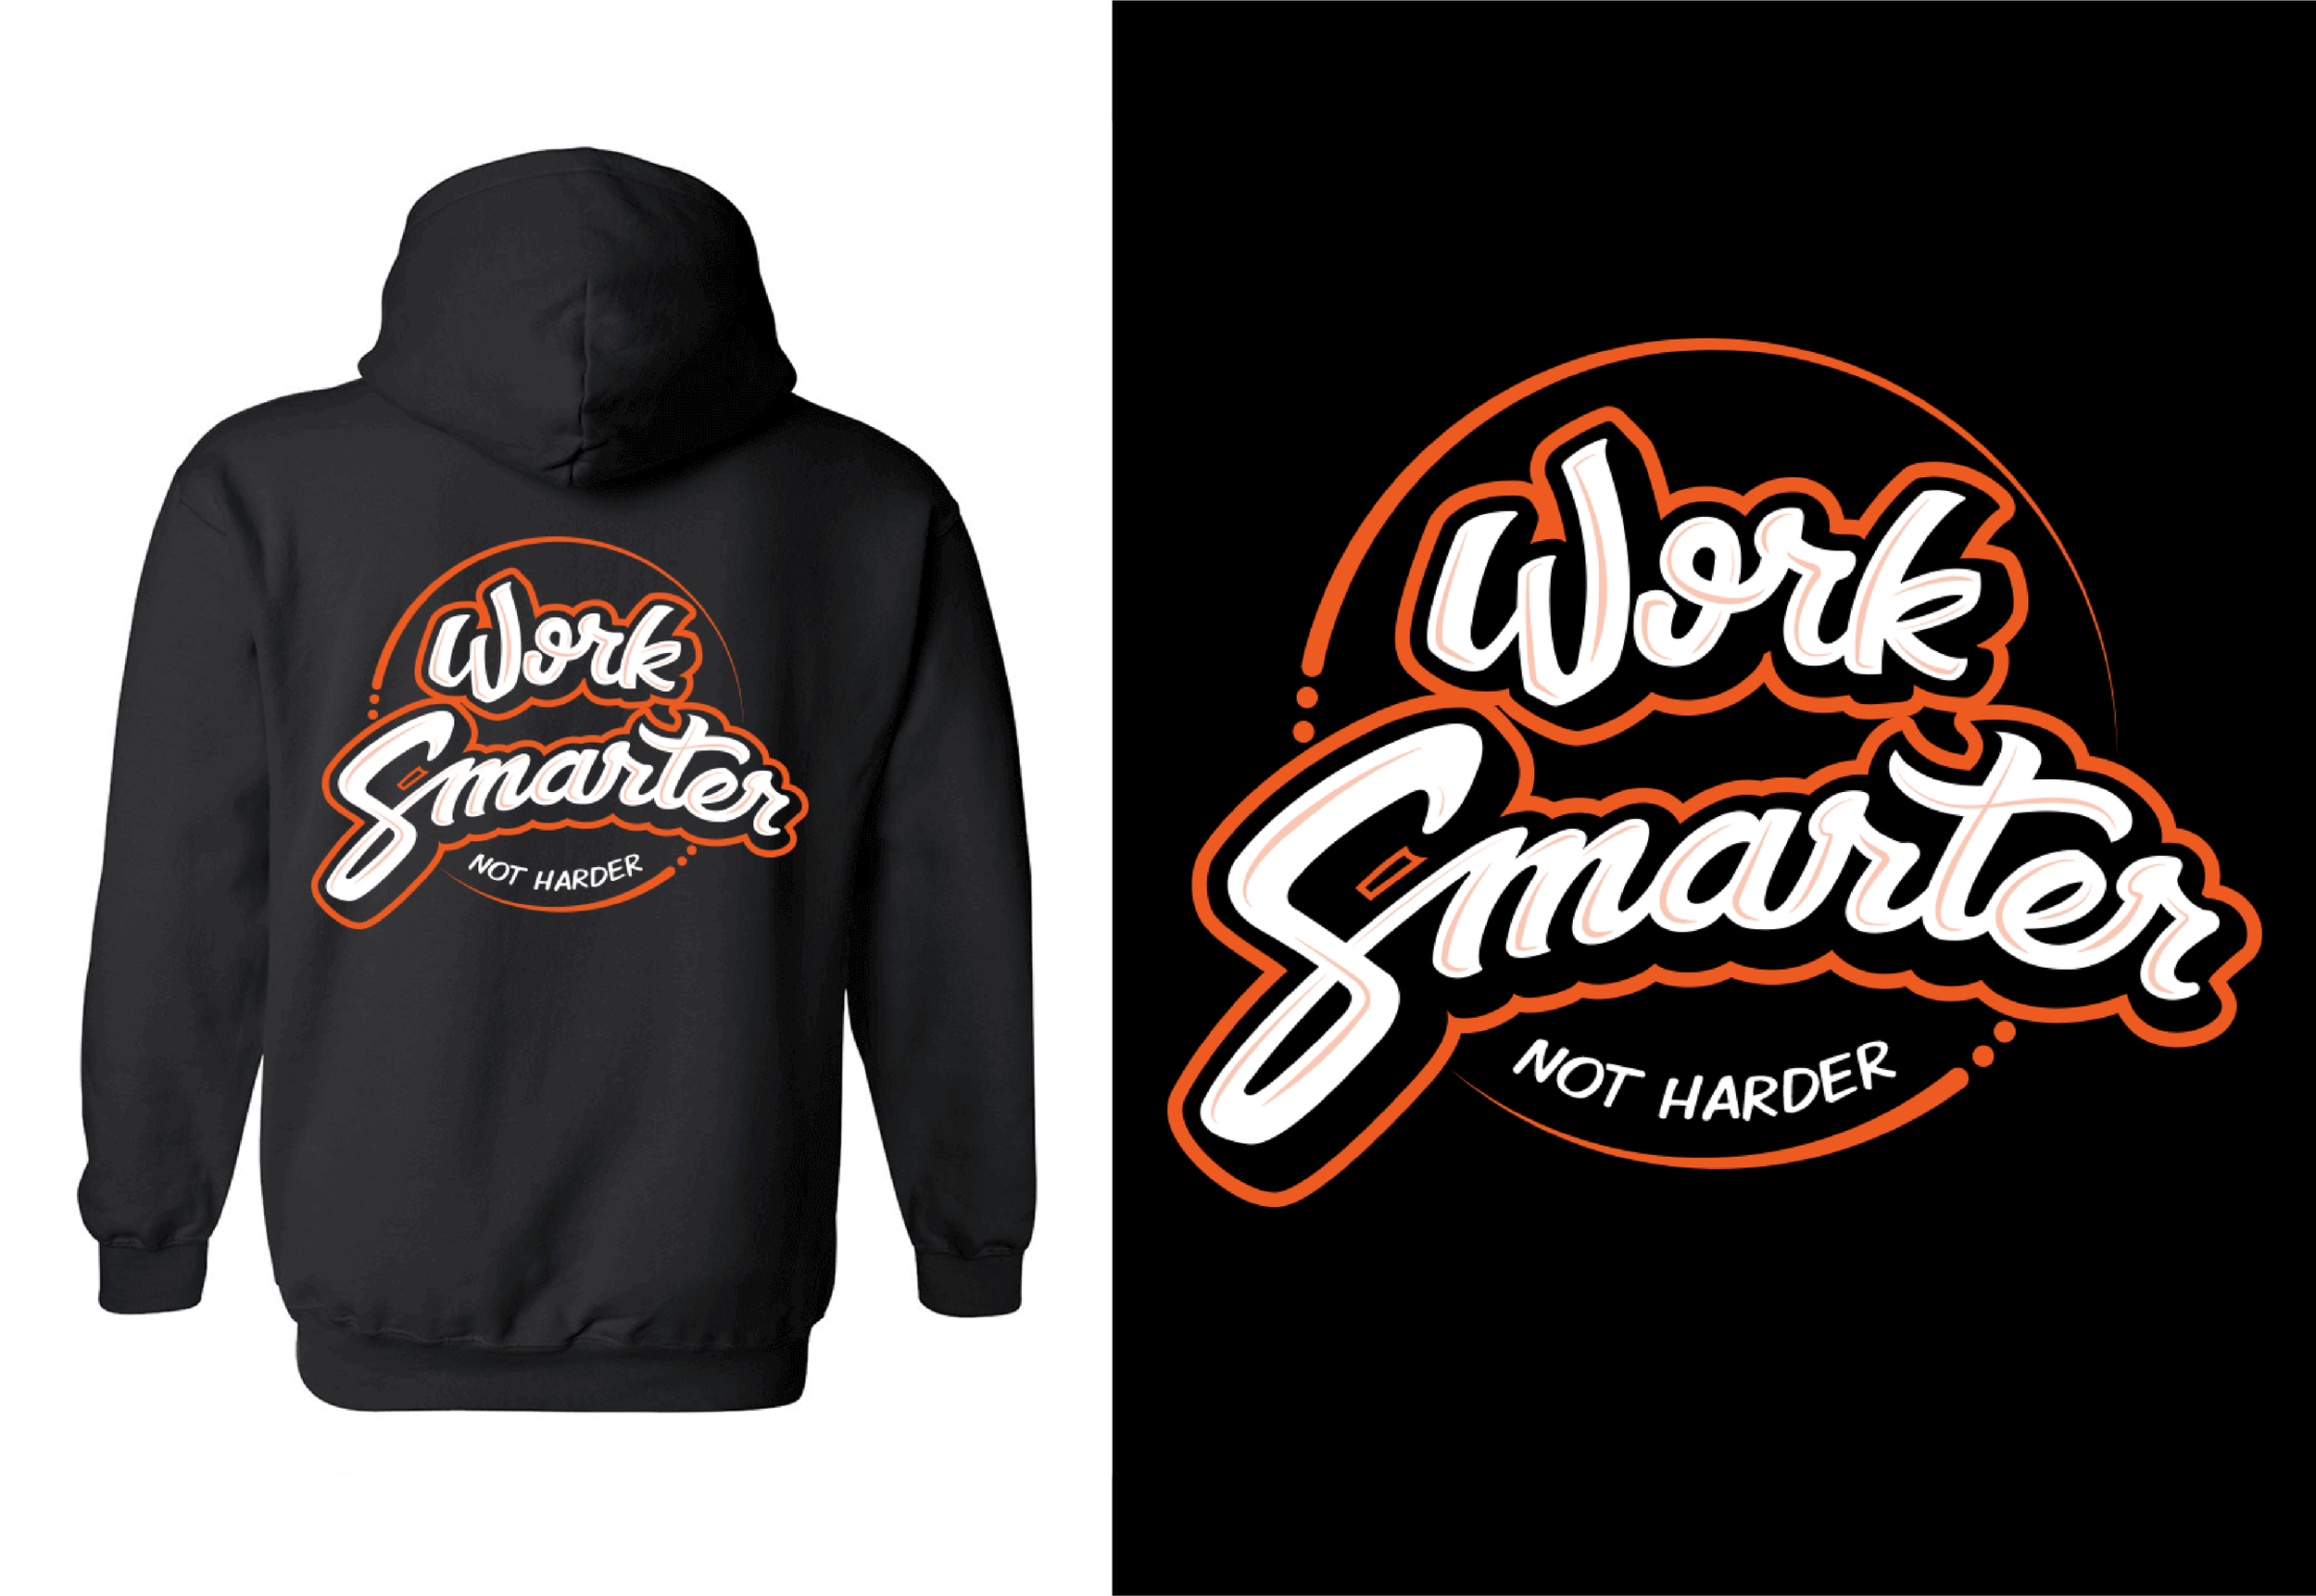 hoodie design-thumbnail copy 2.png